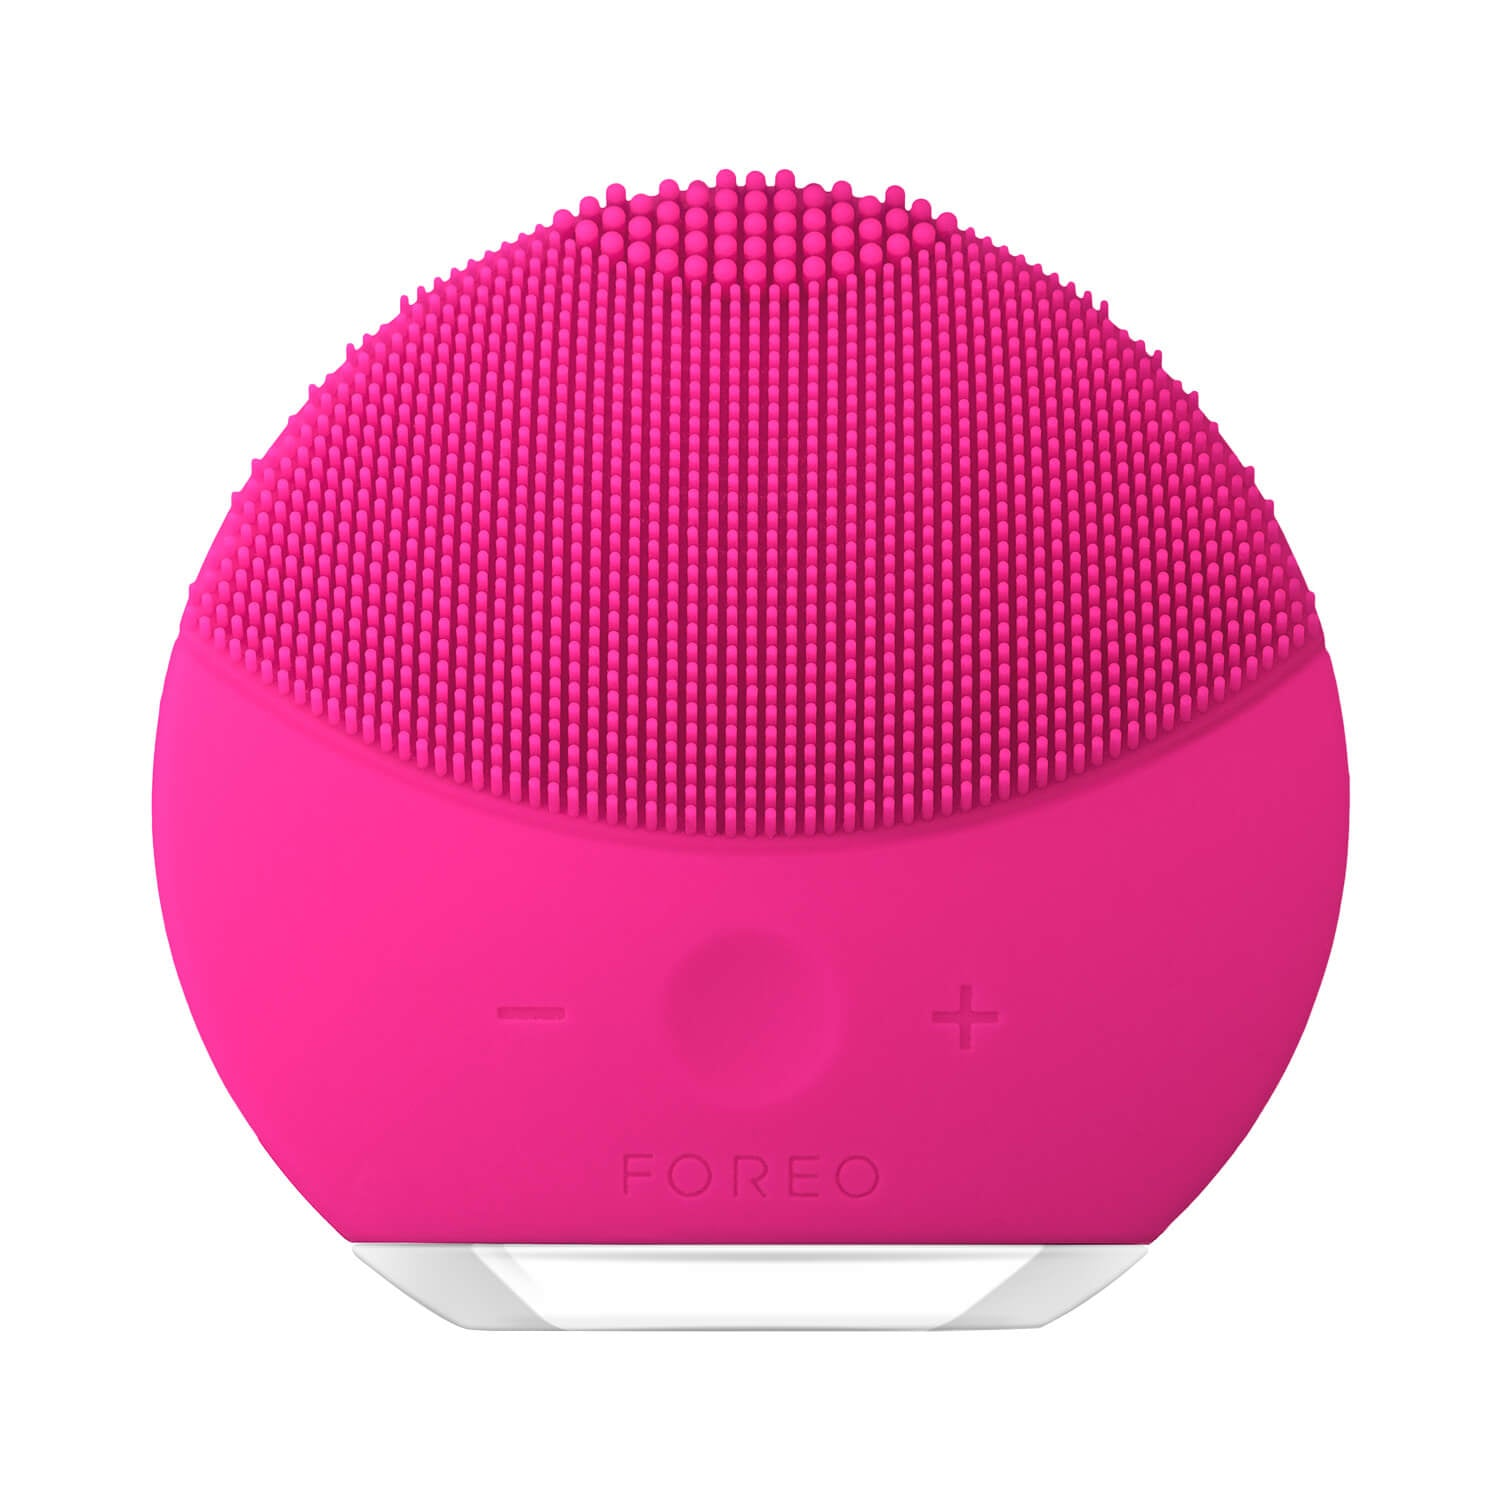 FOREO LUNA Mini 2 Facial Cleansing Brush Fuchsia